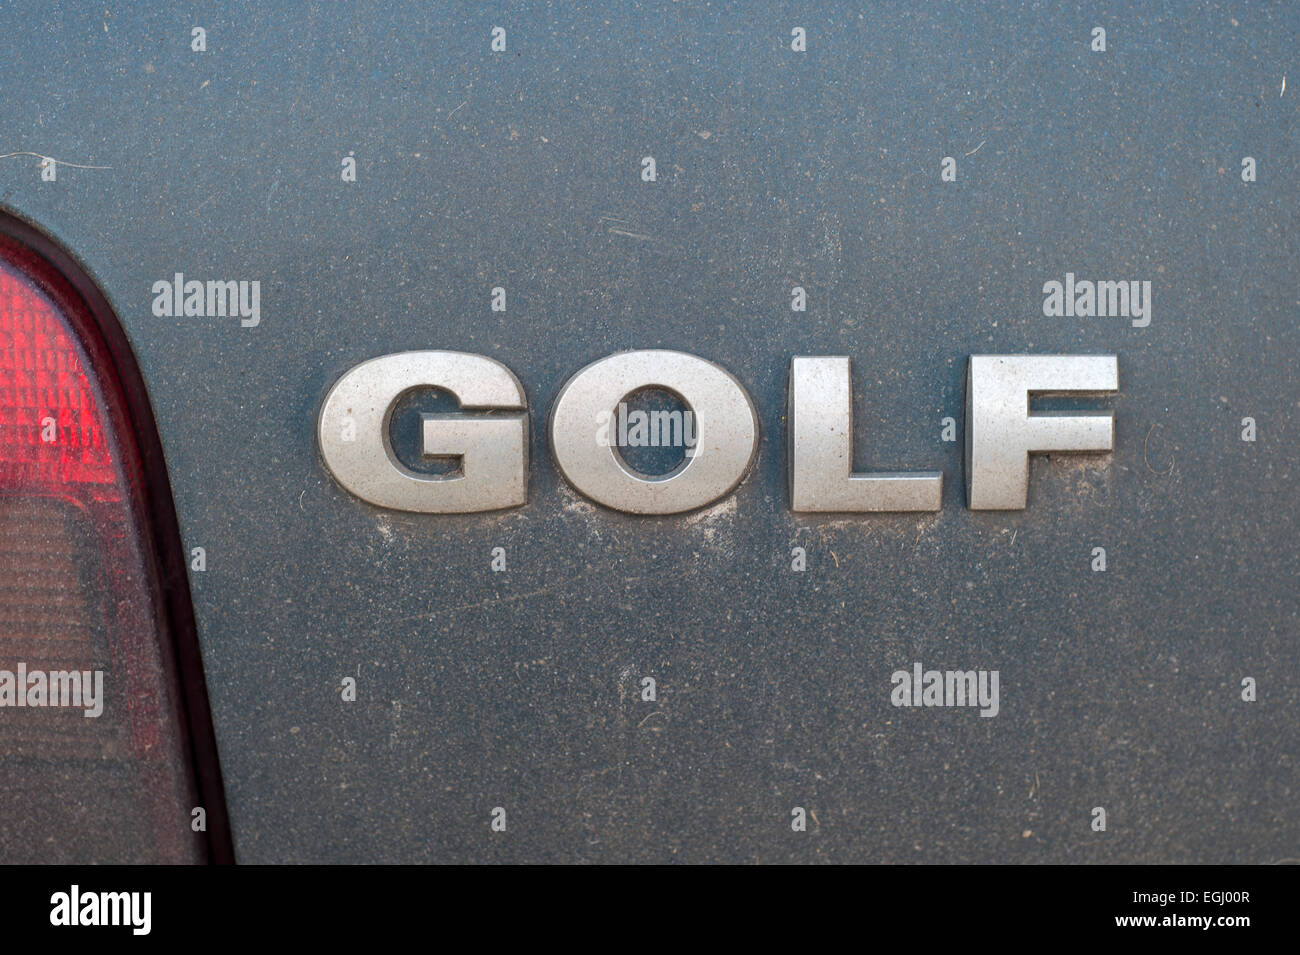 VW Golf logo on the back of a car - Stock Image